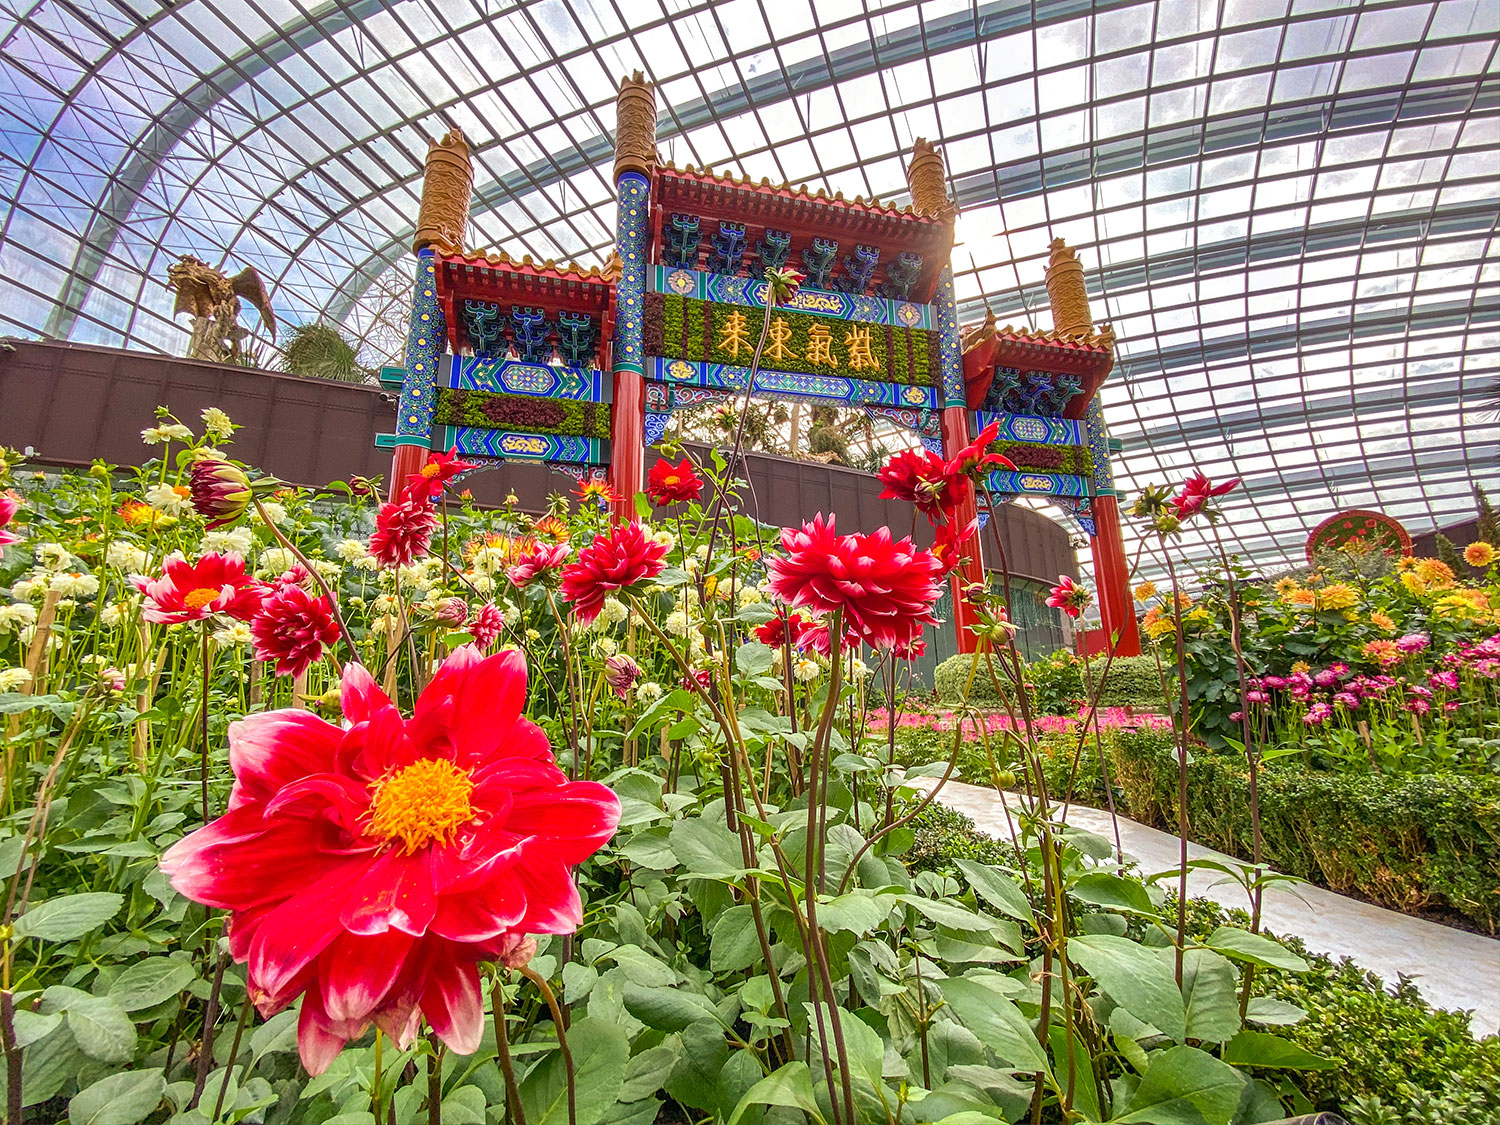 Dahlia Dreams 2020 at Gardens by the Bay